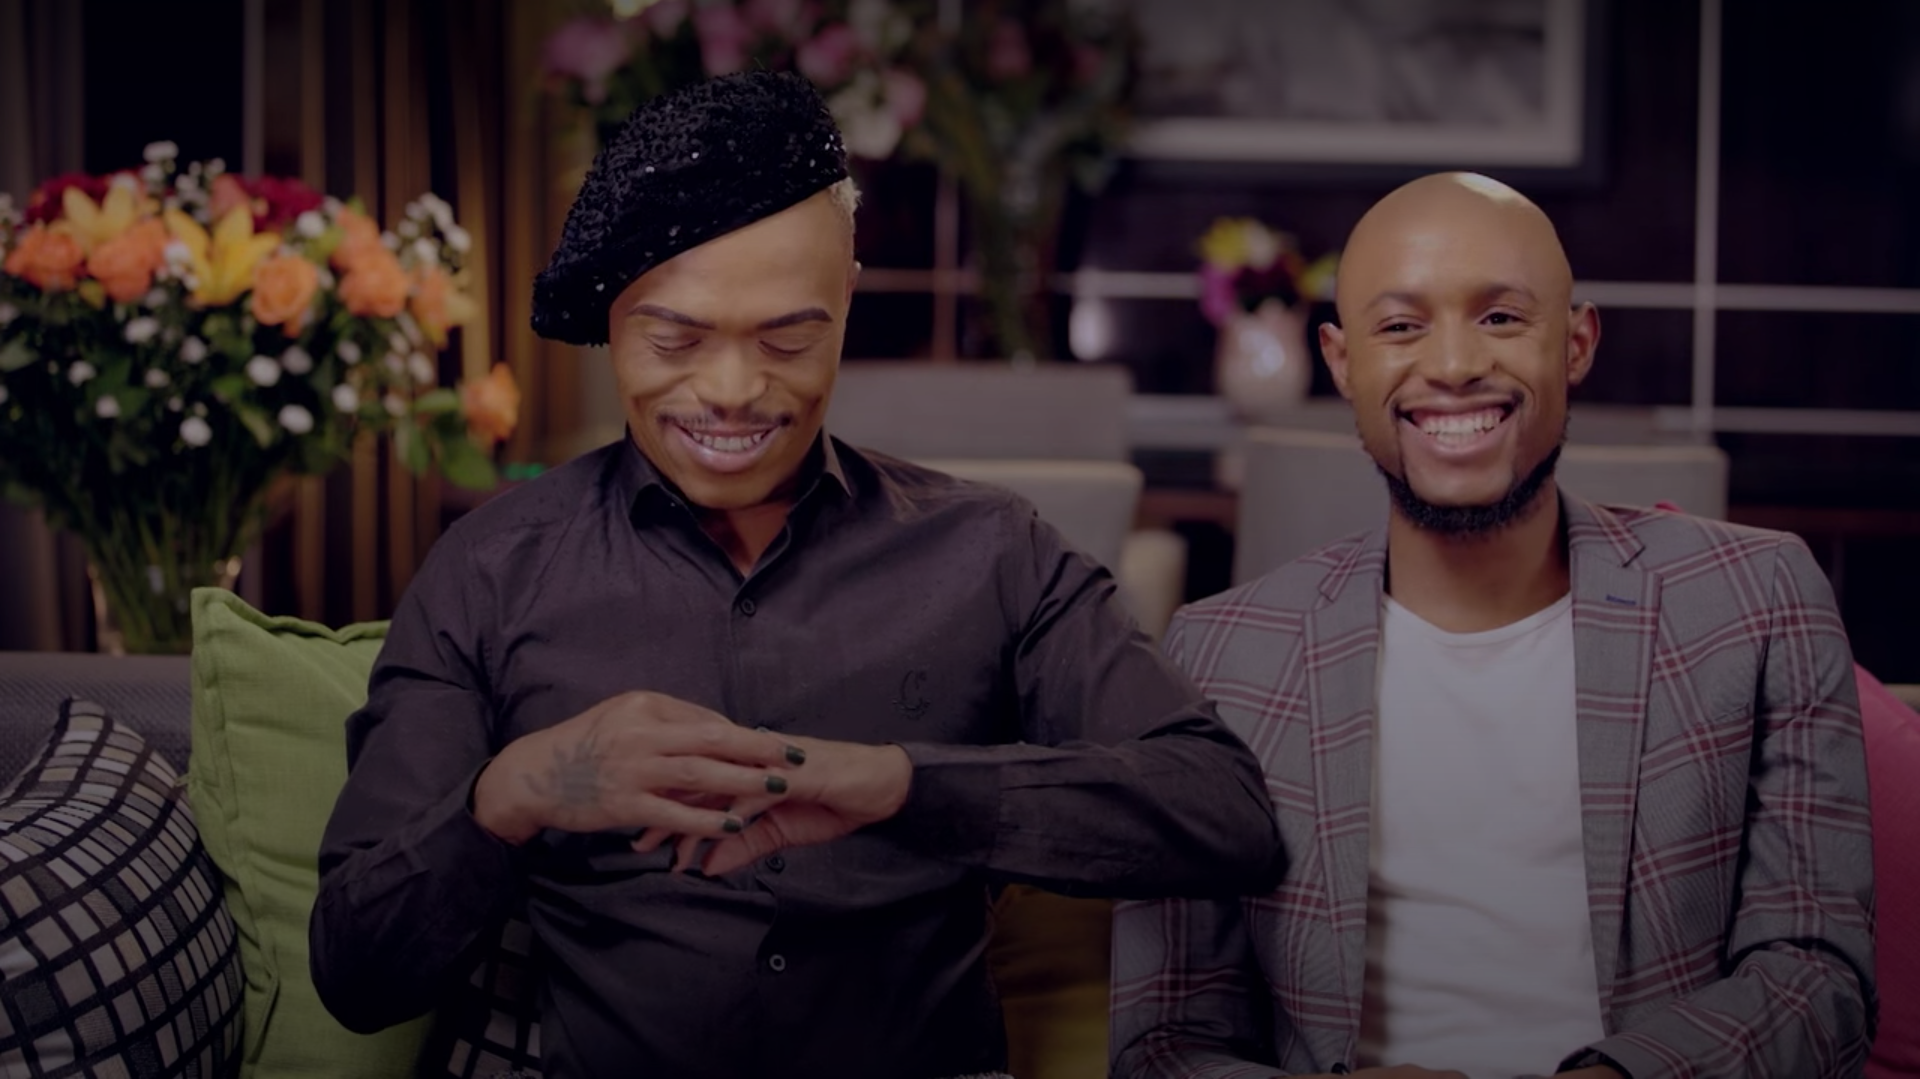 Imported Flowers, Smoking Sushi, & Bahumi Walking Somizi Down The Isle – What To Expect From The Somhale White Wedding